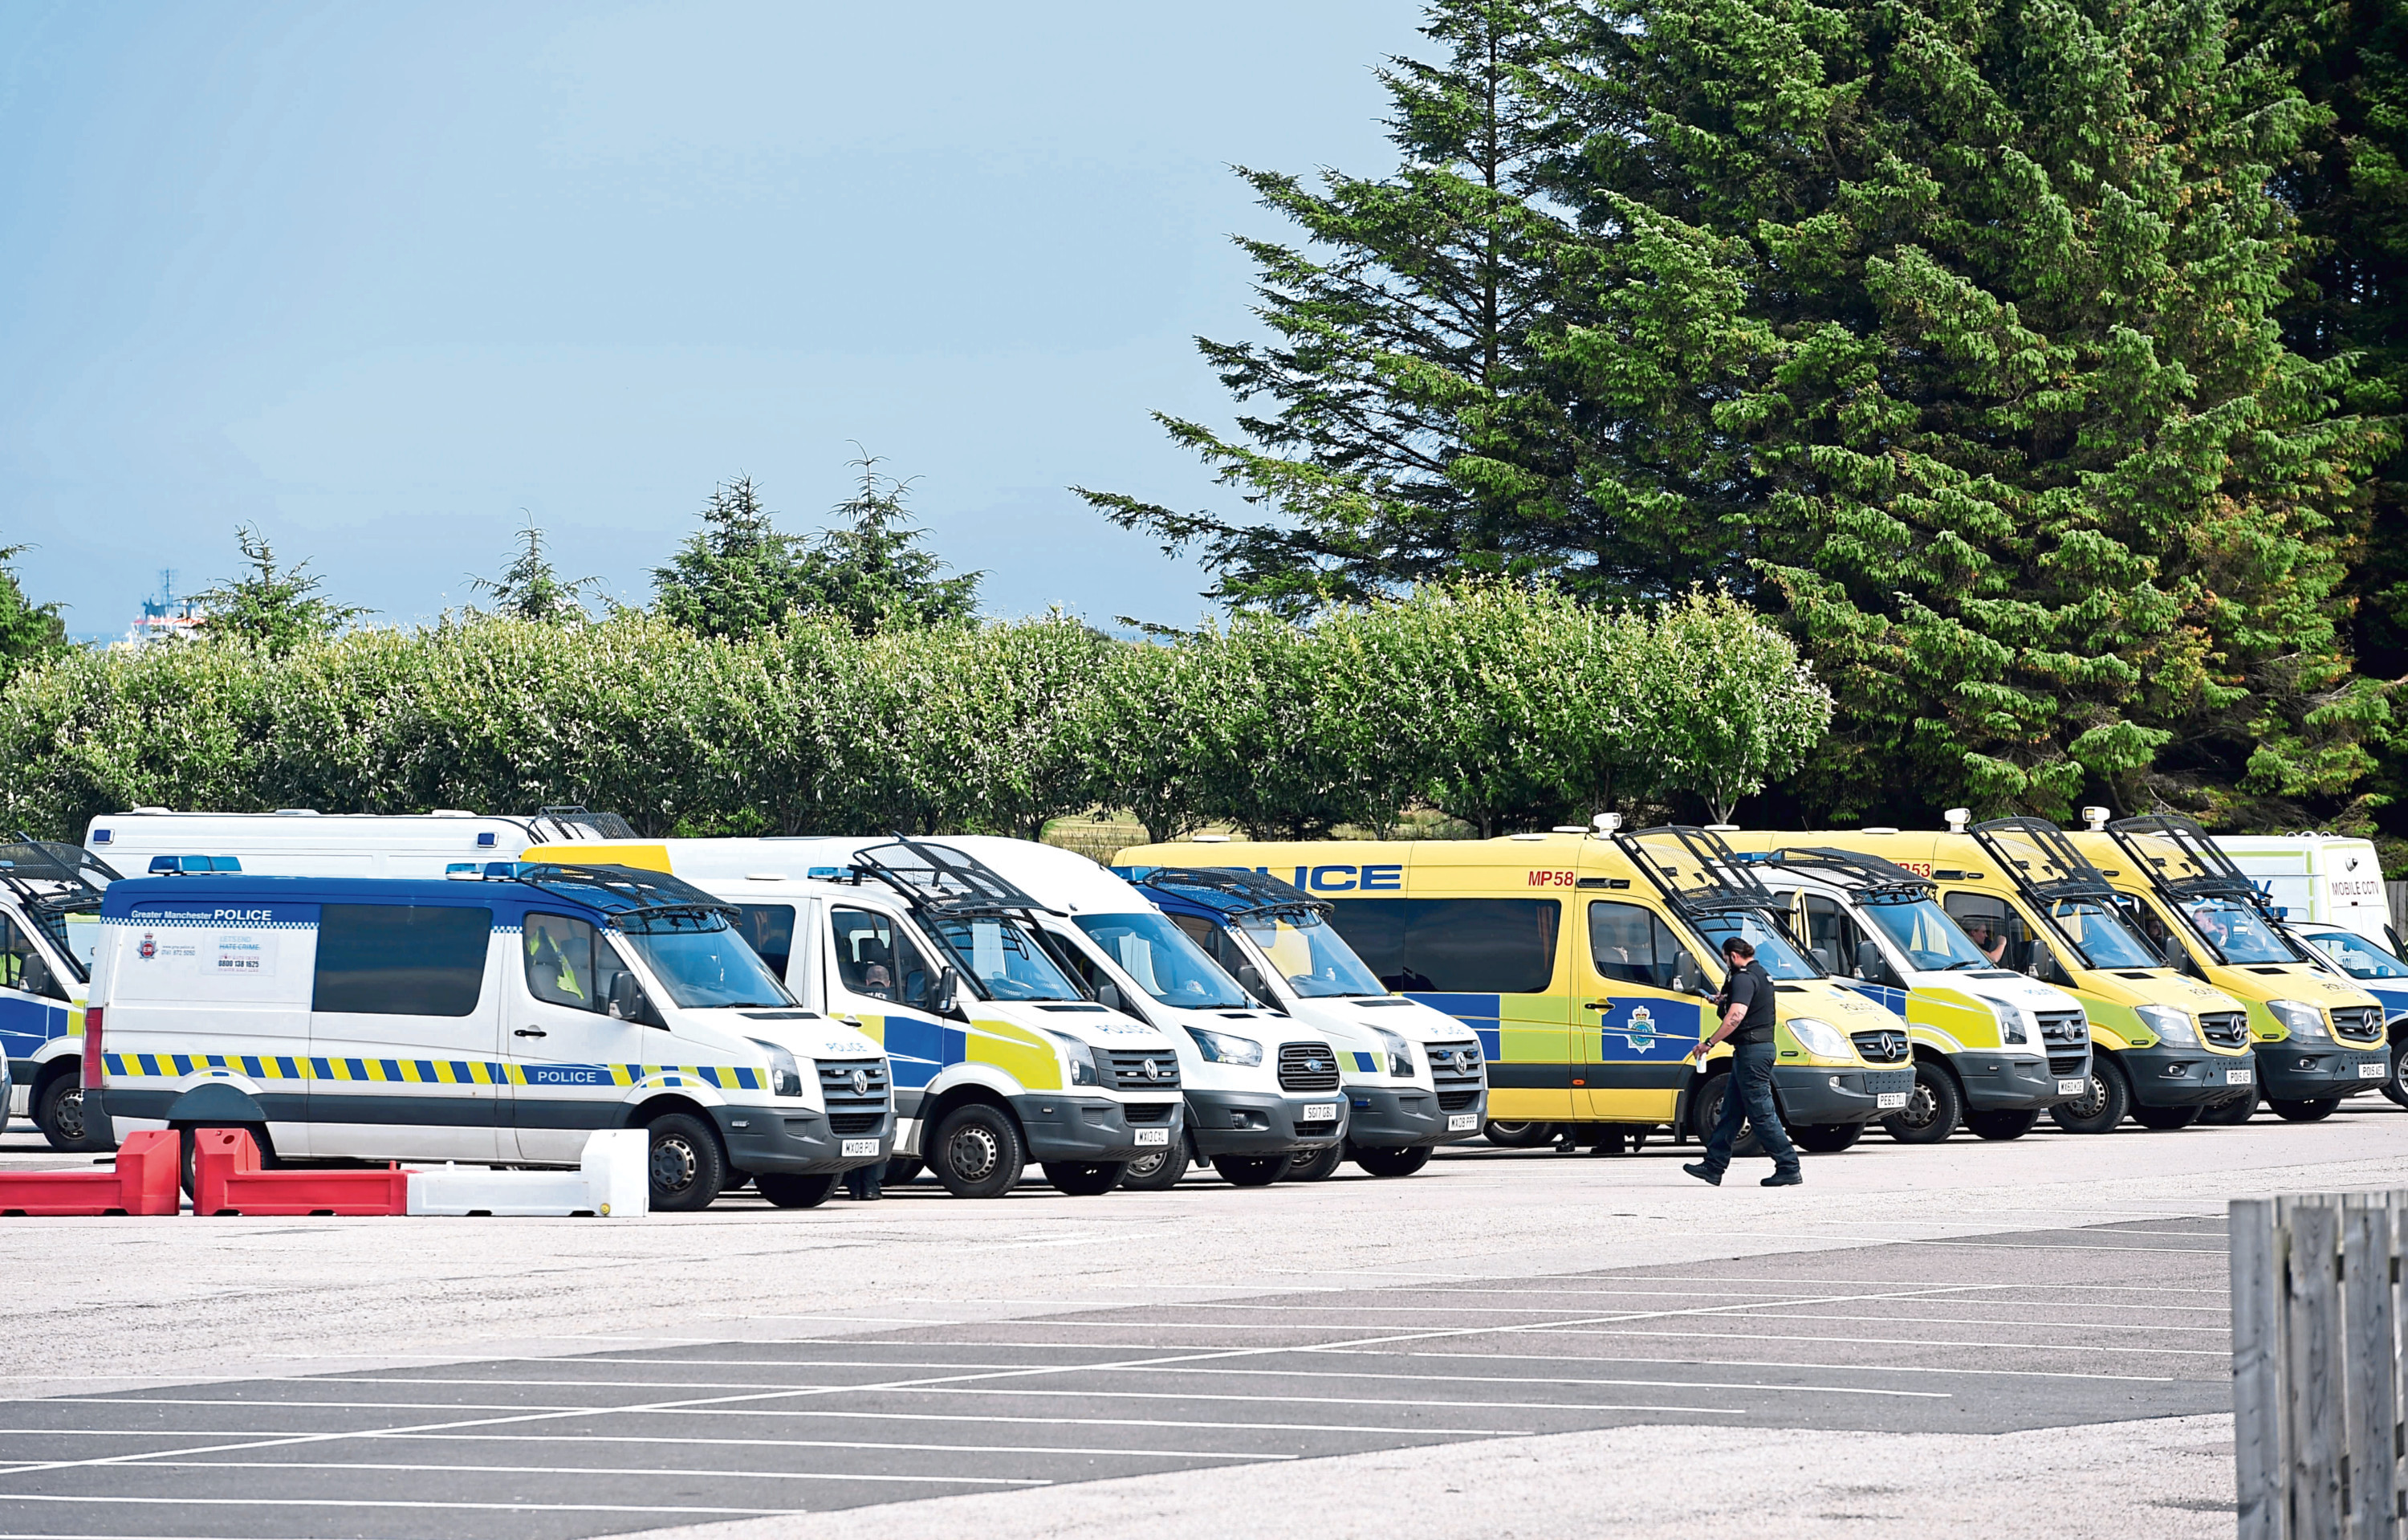 Police riot vans parked at the AECC